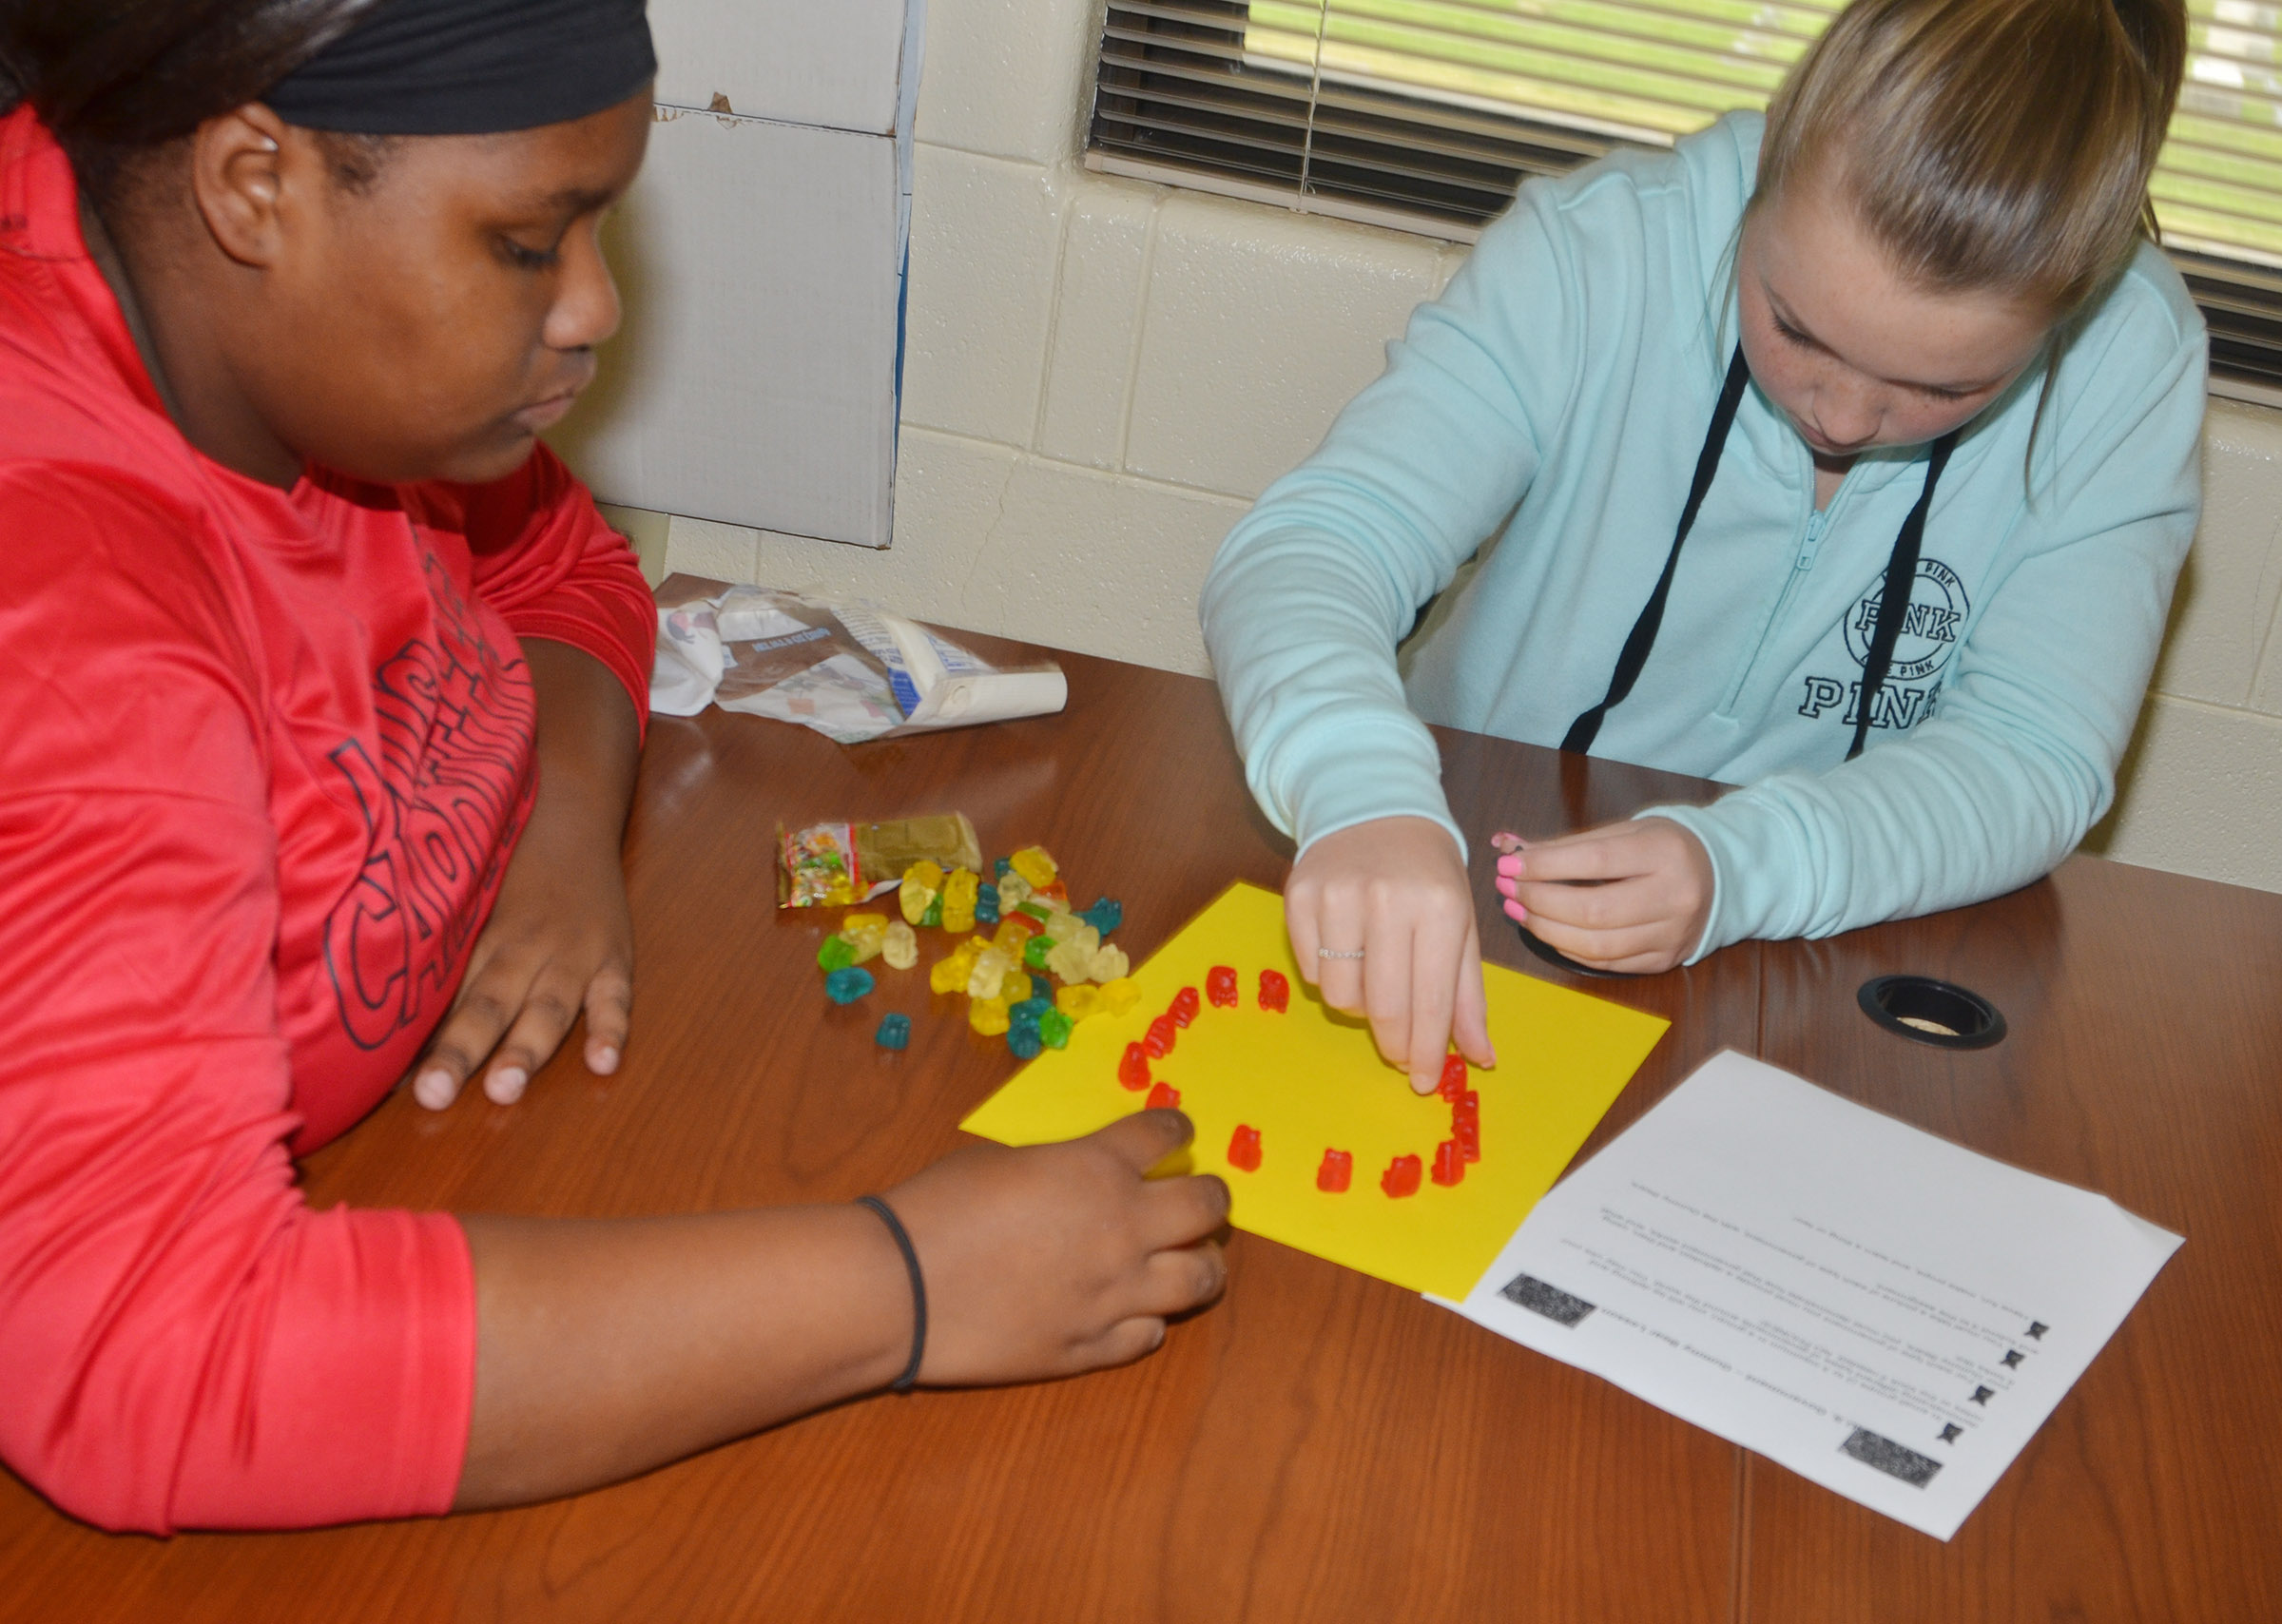 CHS sophomores Jakyia Mitchell, at left, and Kaleigh Hunt build their gummy bear government model.